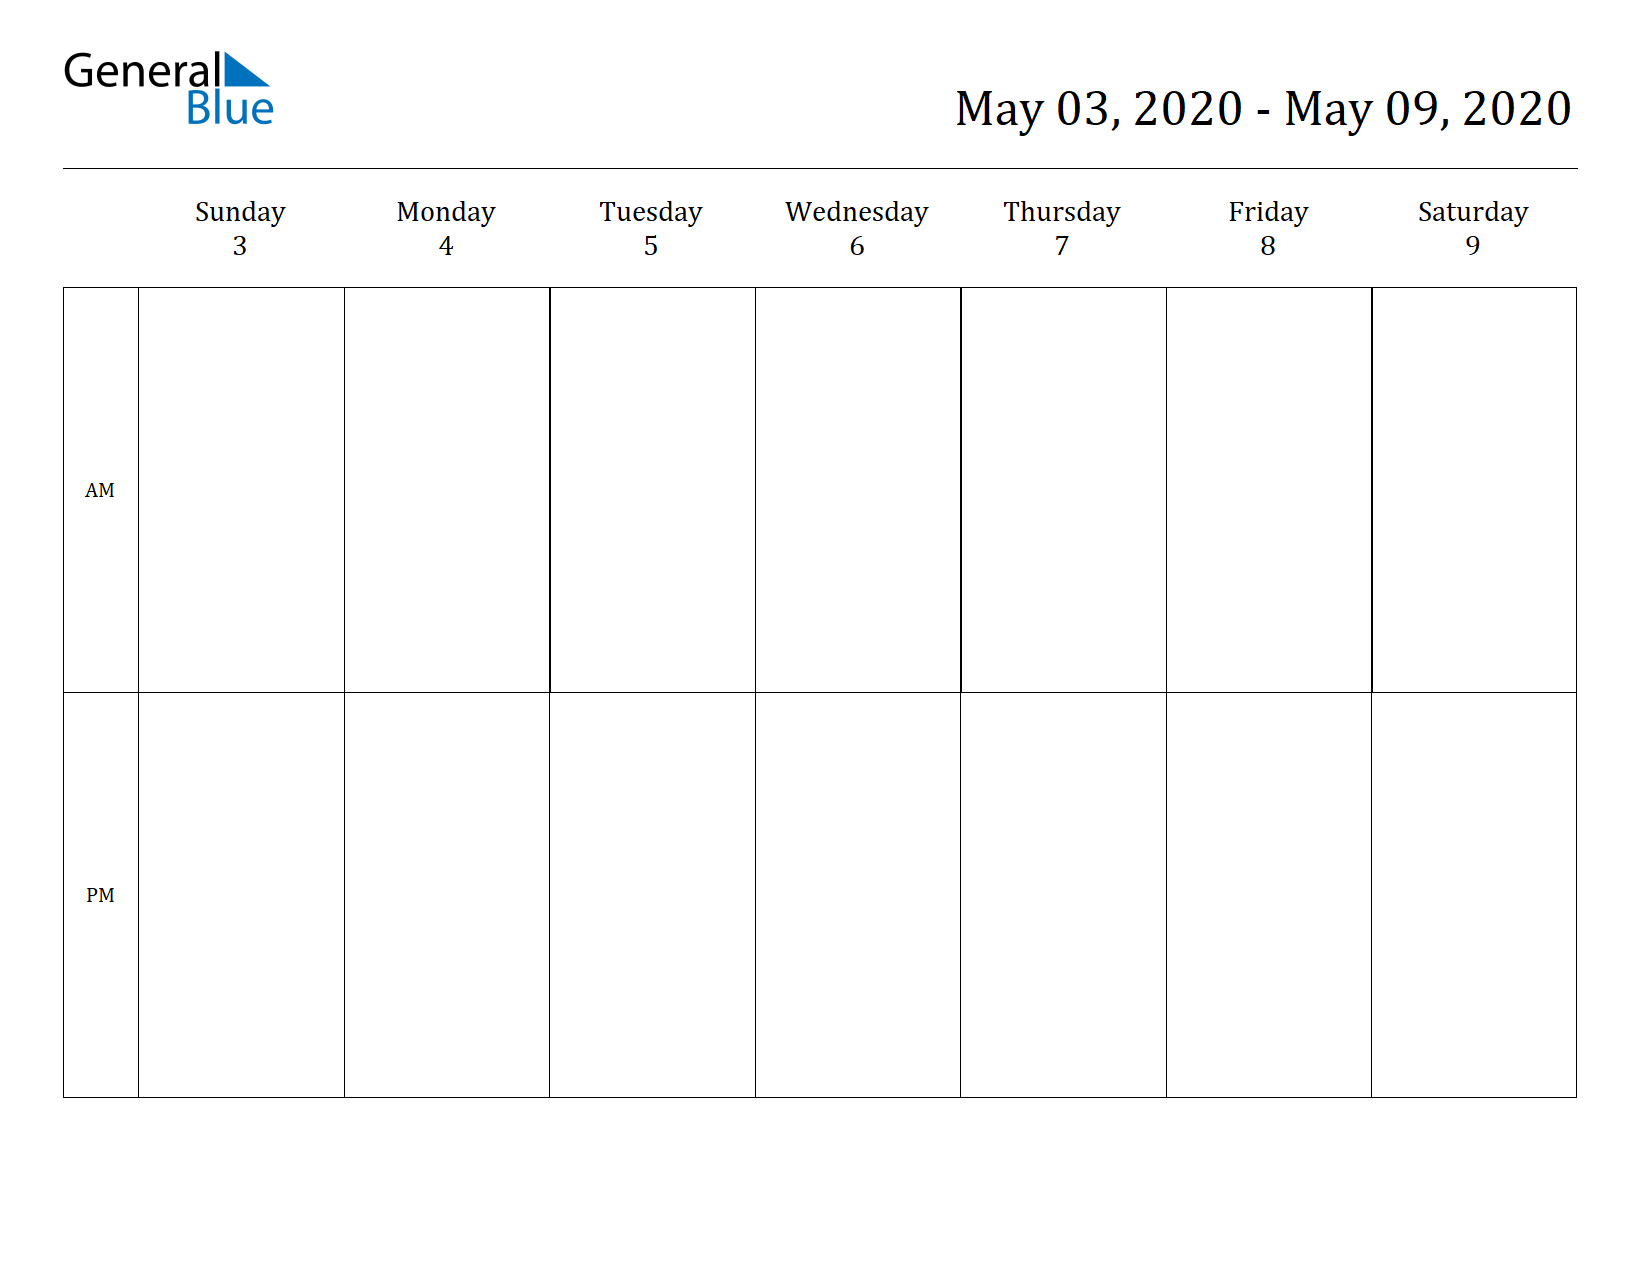 Weekly Calendar for May 03, 2020 to May 09, 2020